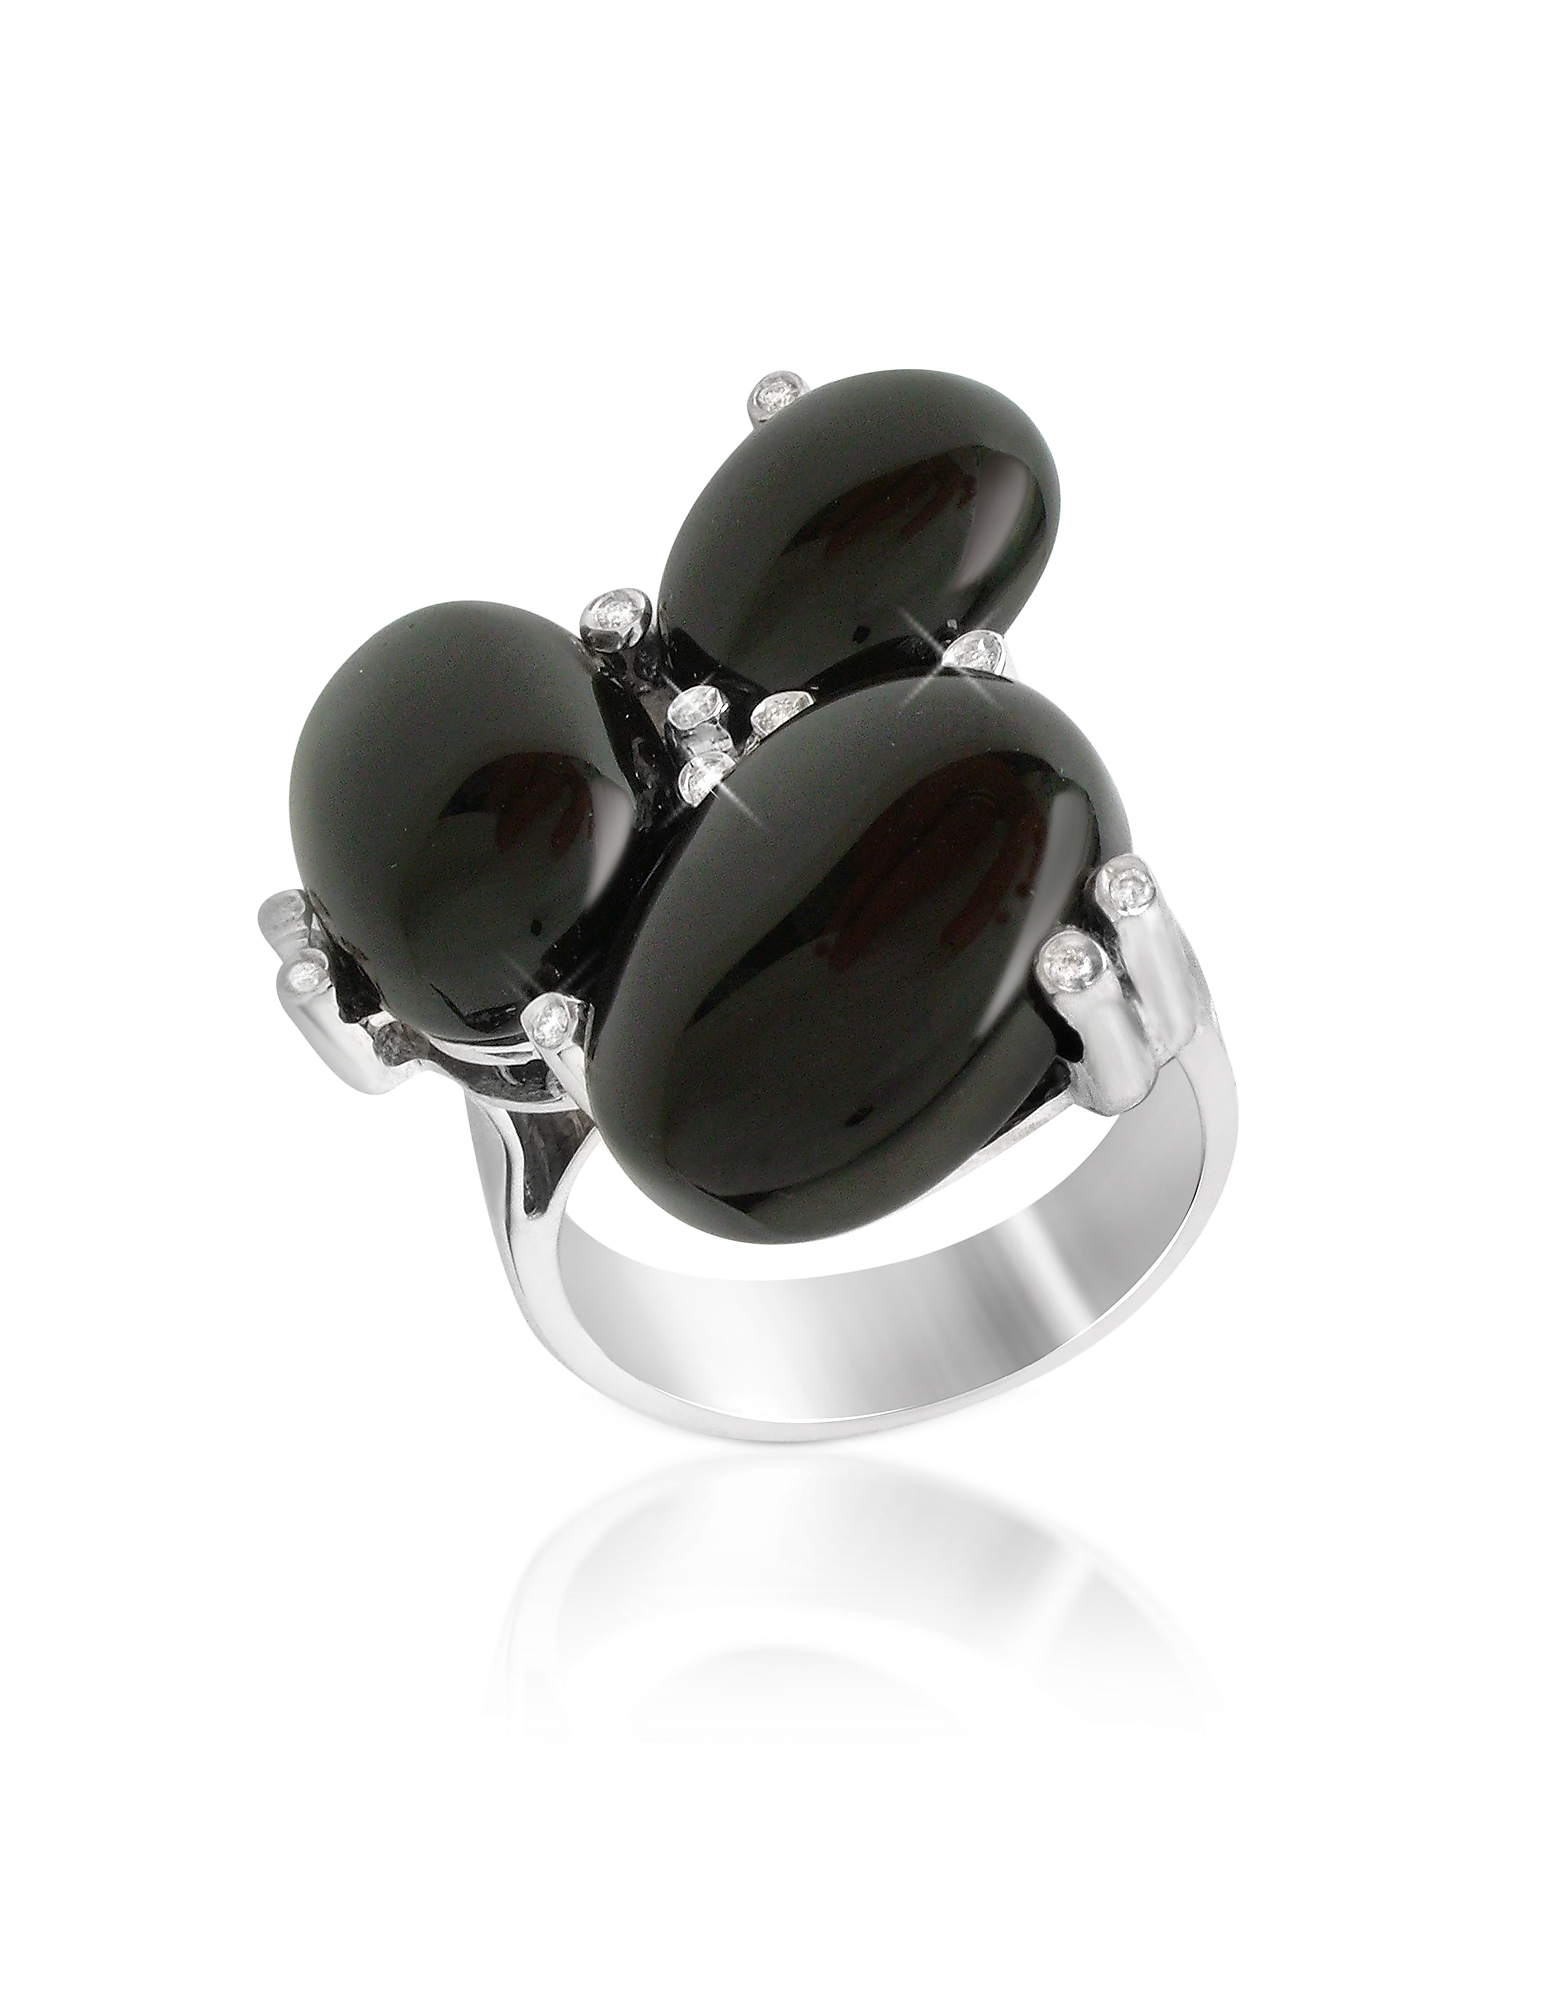 Del Gatto Rings, Diamond and Onyx Three-stone 18K Gold Ring